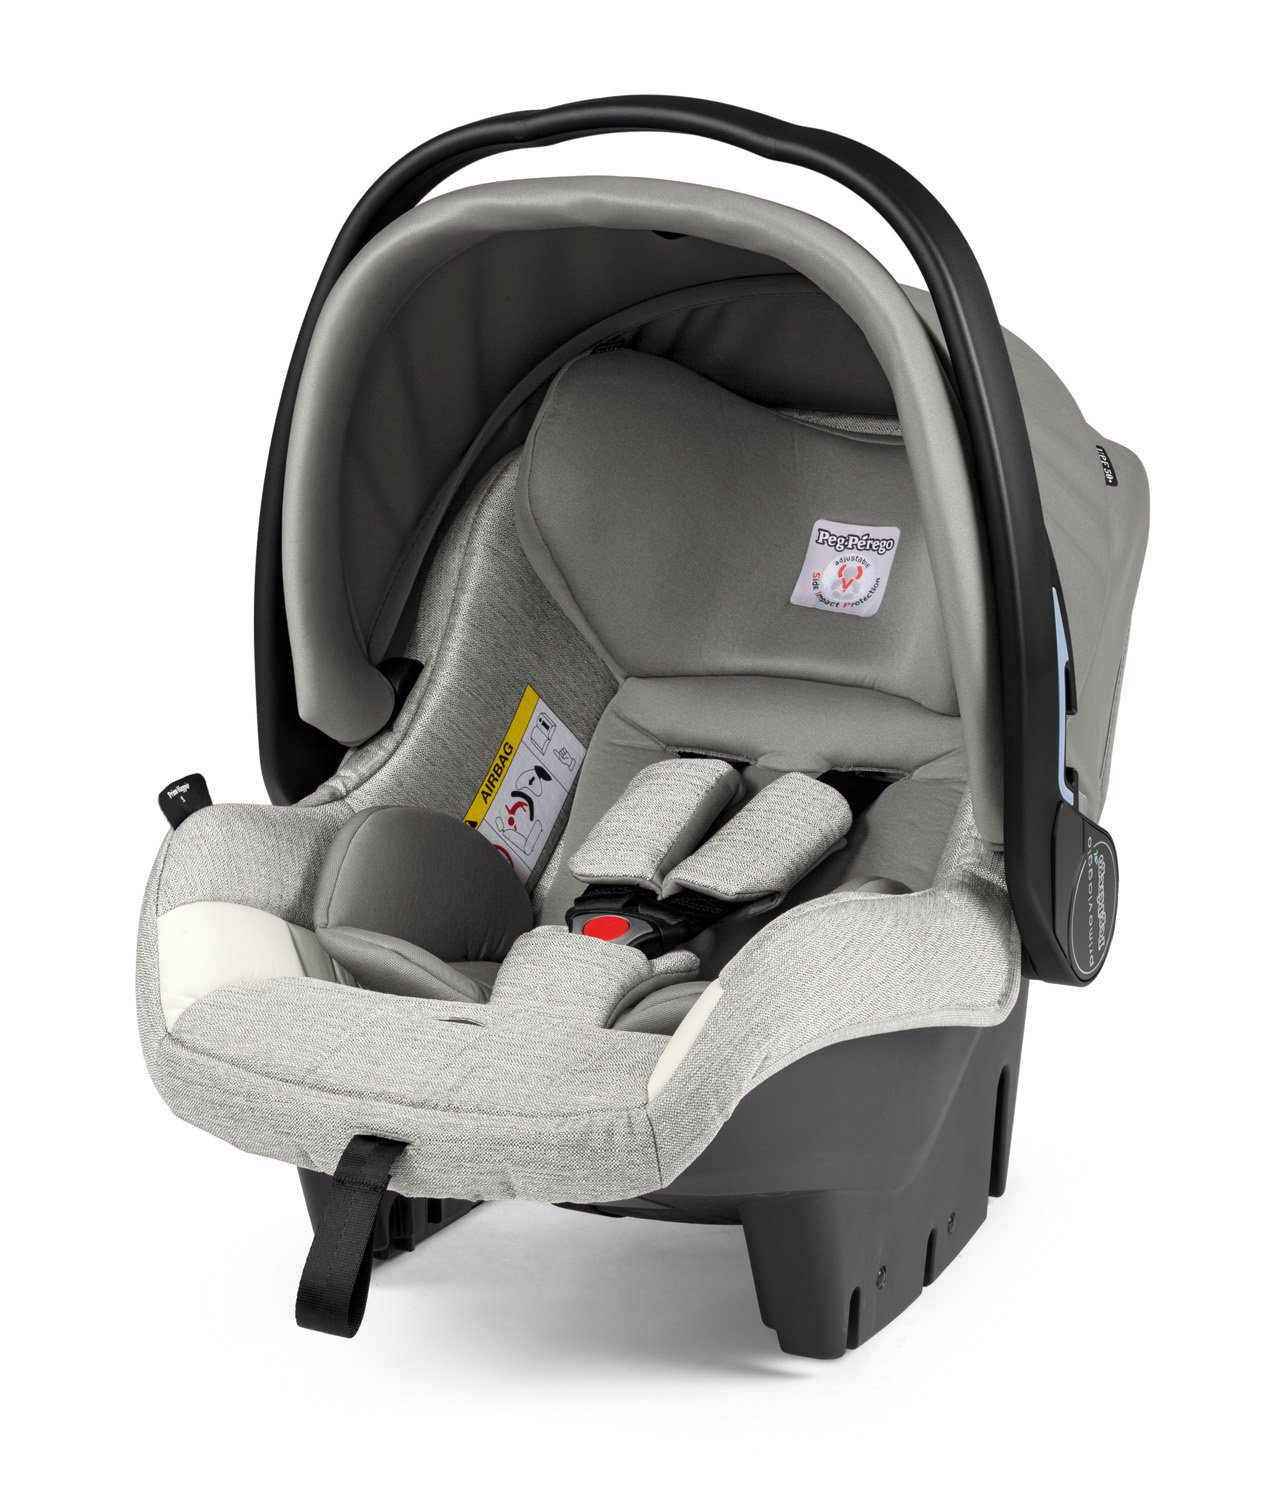 peg perego infant car seat primo viaggio sl 2019 luxe pure. Black Bedroom Furniture Sets. Home Design Ideas